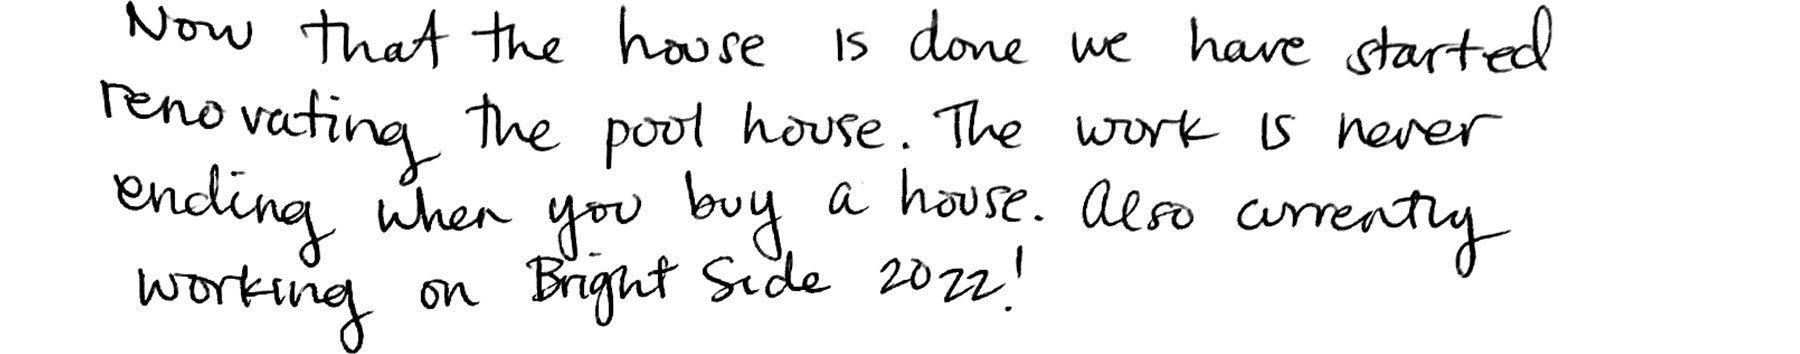 Now that the house is done we have started renovating the pool house. The work is never ending when you buy a house. Also currently working on Bright Side 2022!